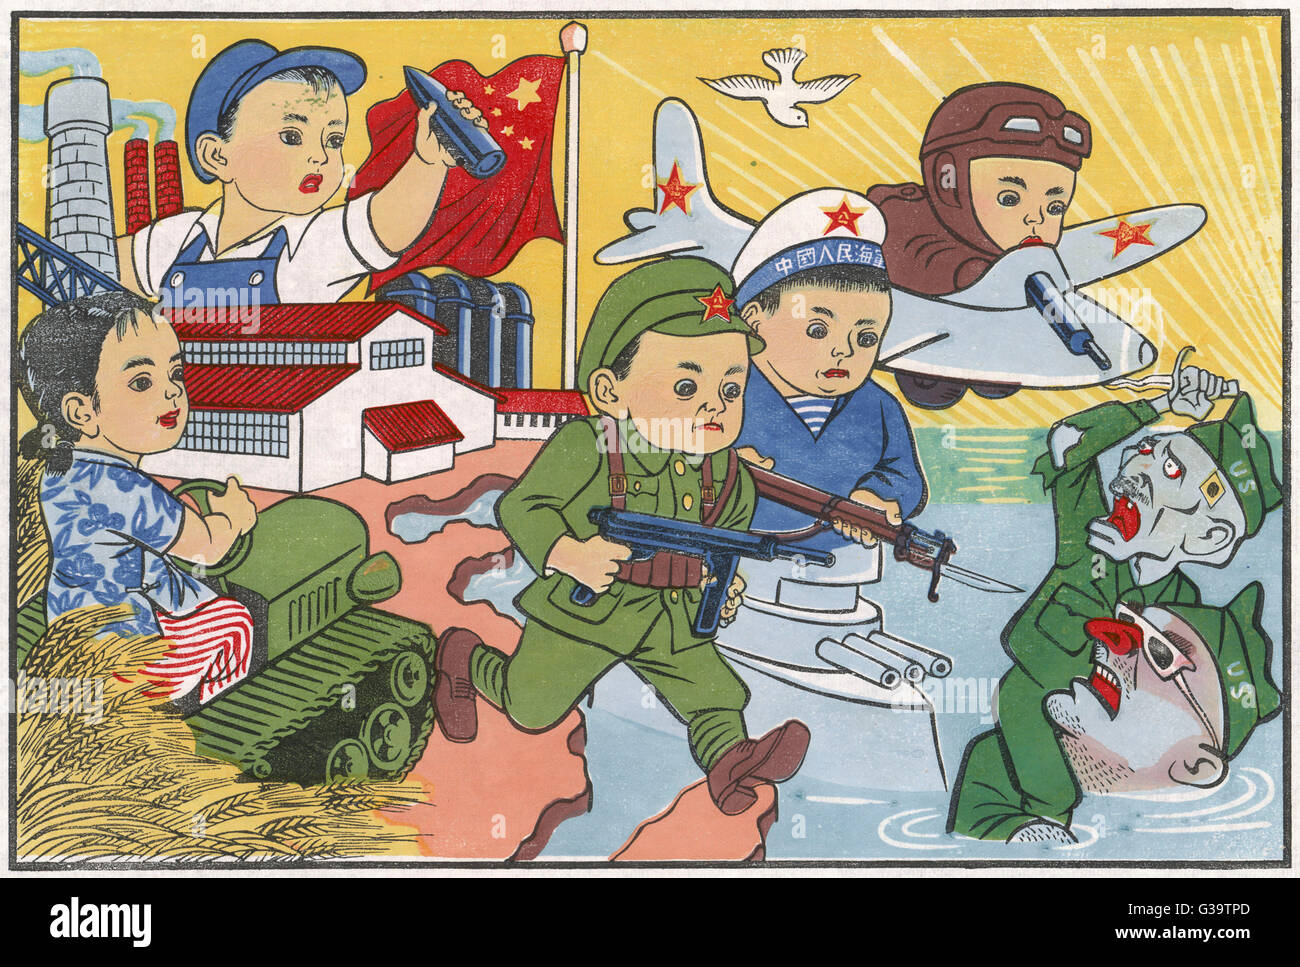 PROPAGANDA : the young,  bright-eyed Communists drive  the horrid old Yanks into the  sea       Date: 1951 - Stock Image